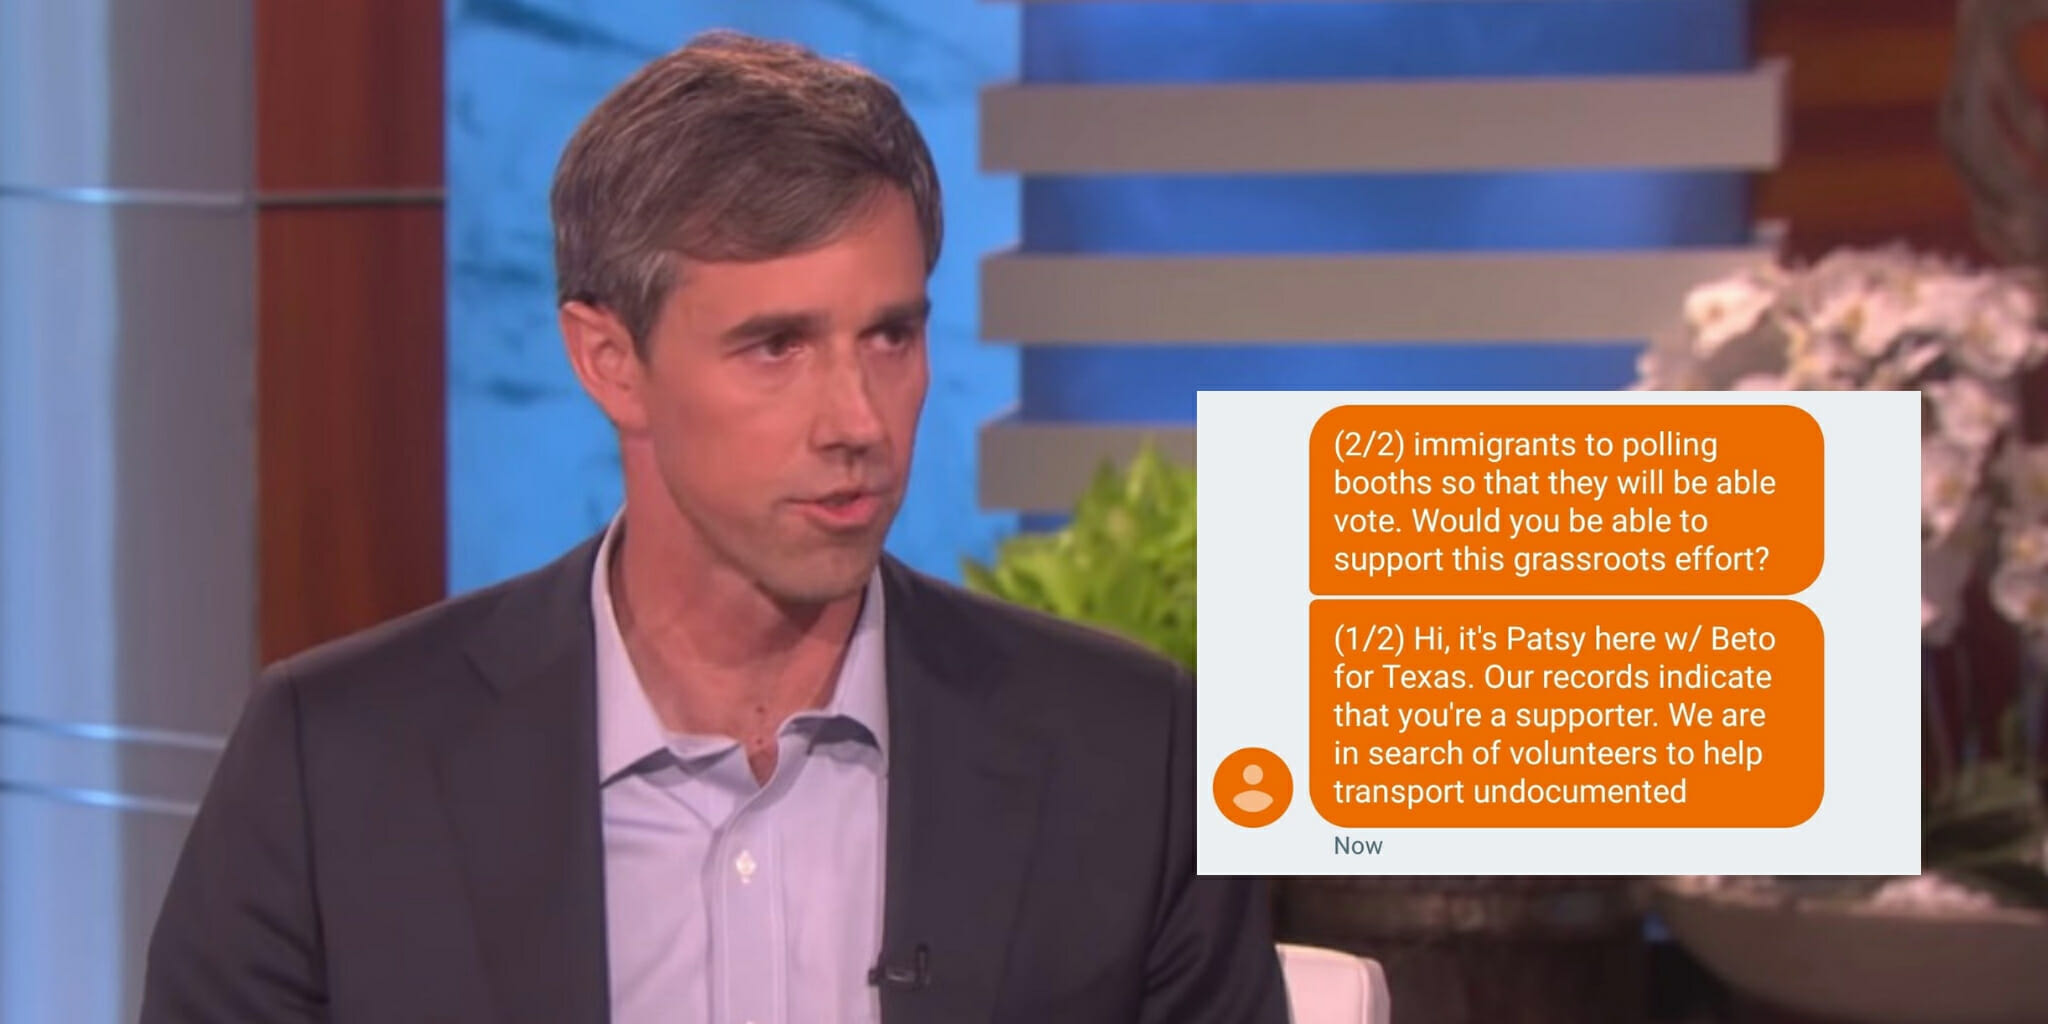 Beto O'Rourke Camp Apologizes for Texts About Undocumented ...